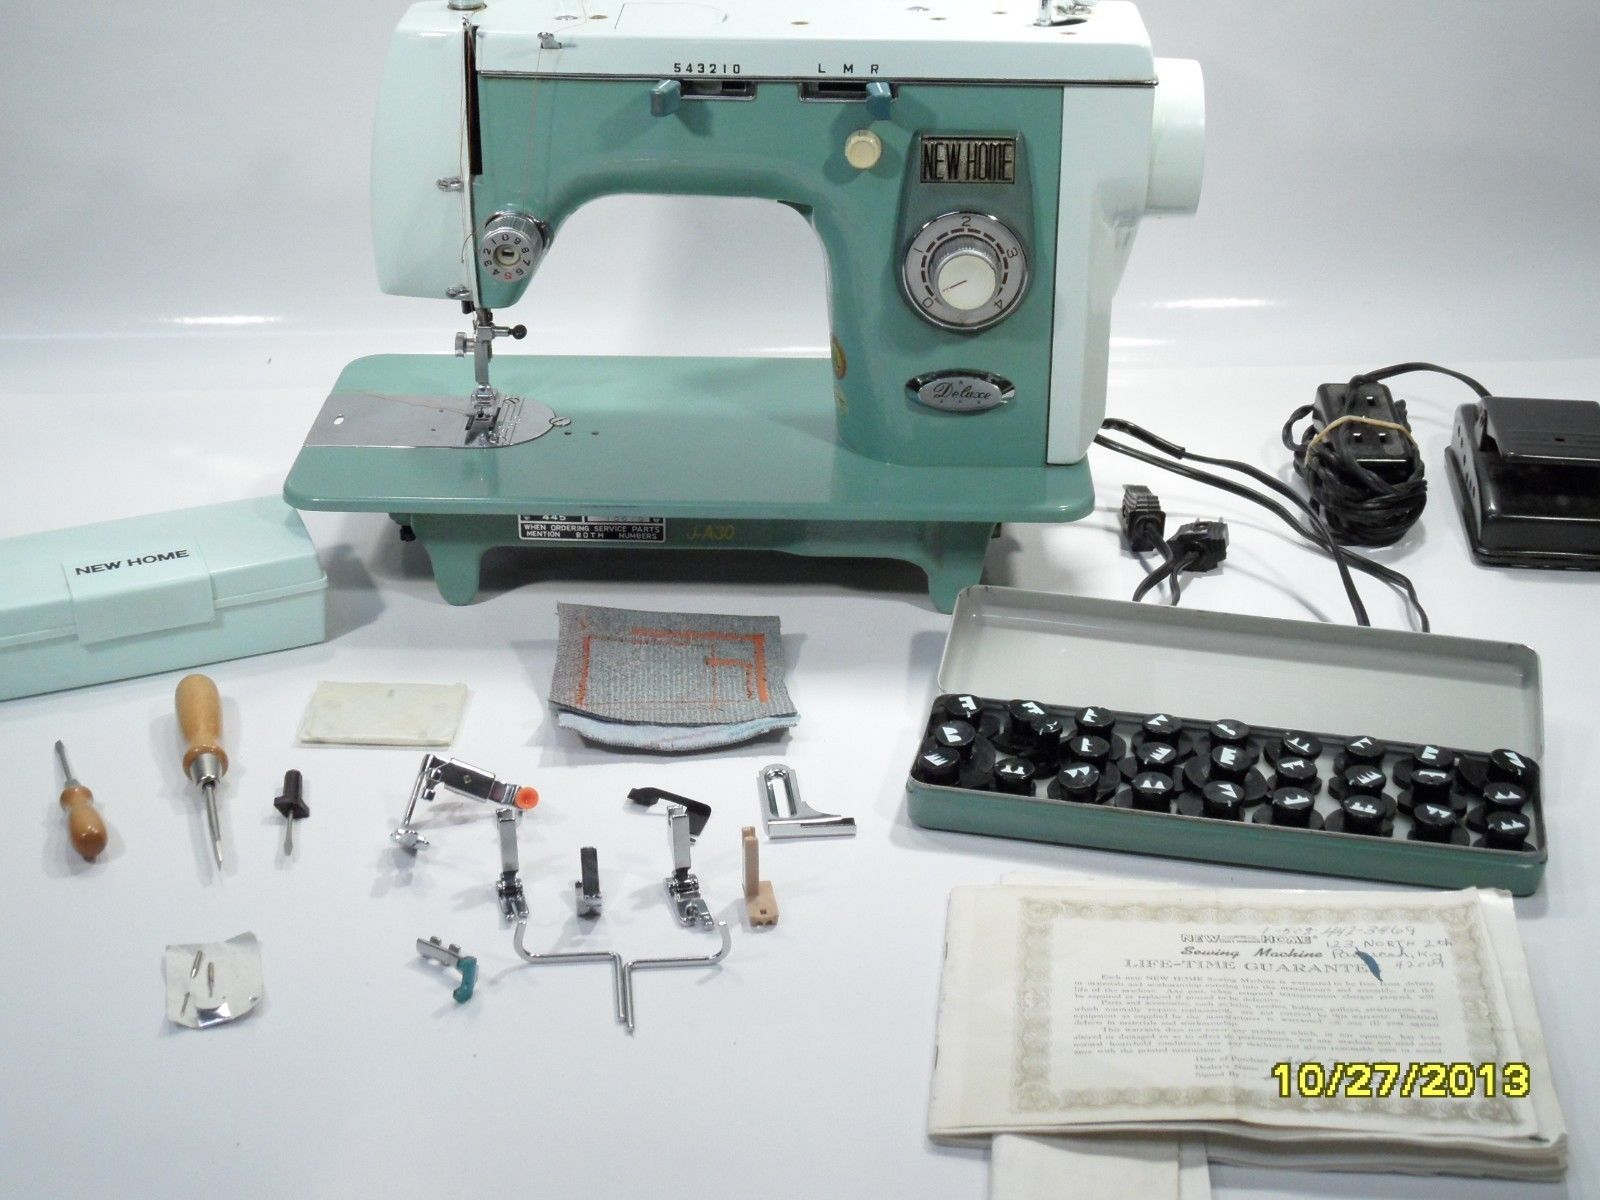 NEW Home Janome 445 Heavy Duty Sewing Machine With Attachments AND Cams  Sewing Studio, Vintage